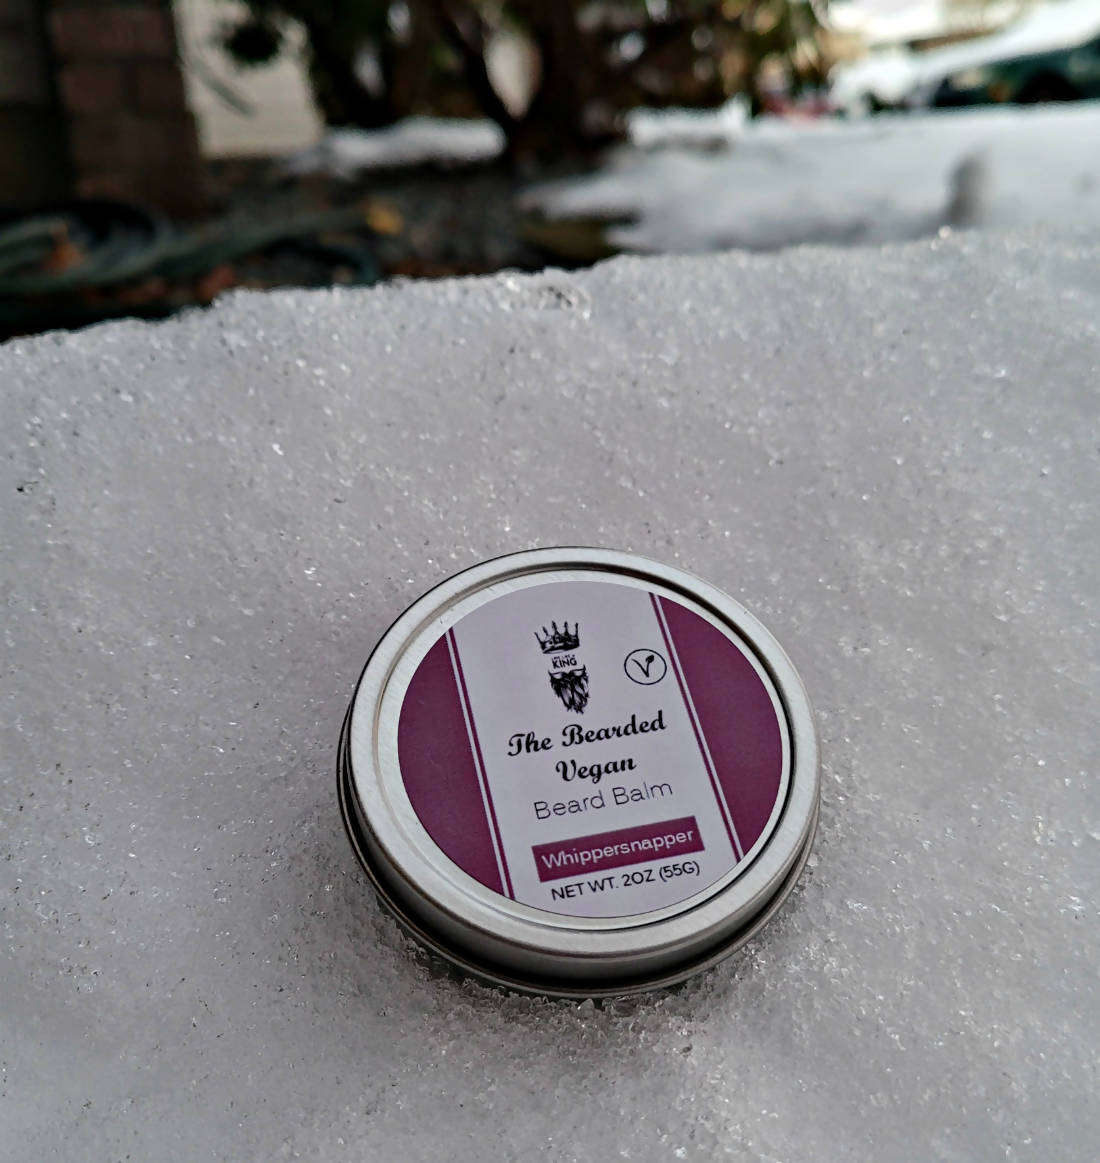 Whippersnapper Beard Balm